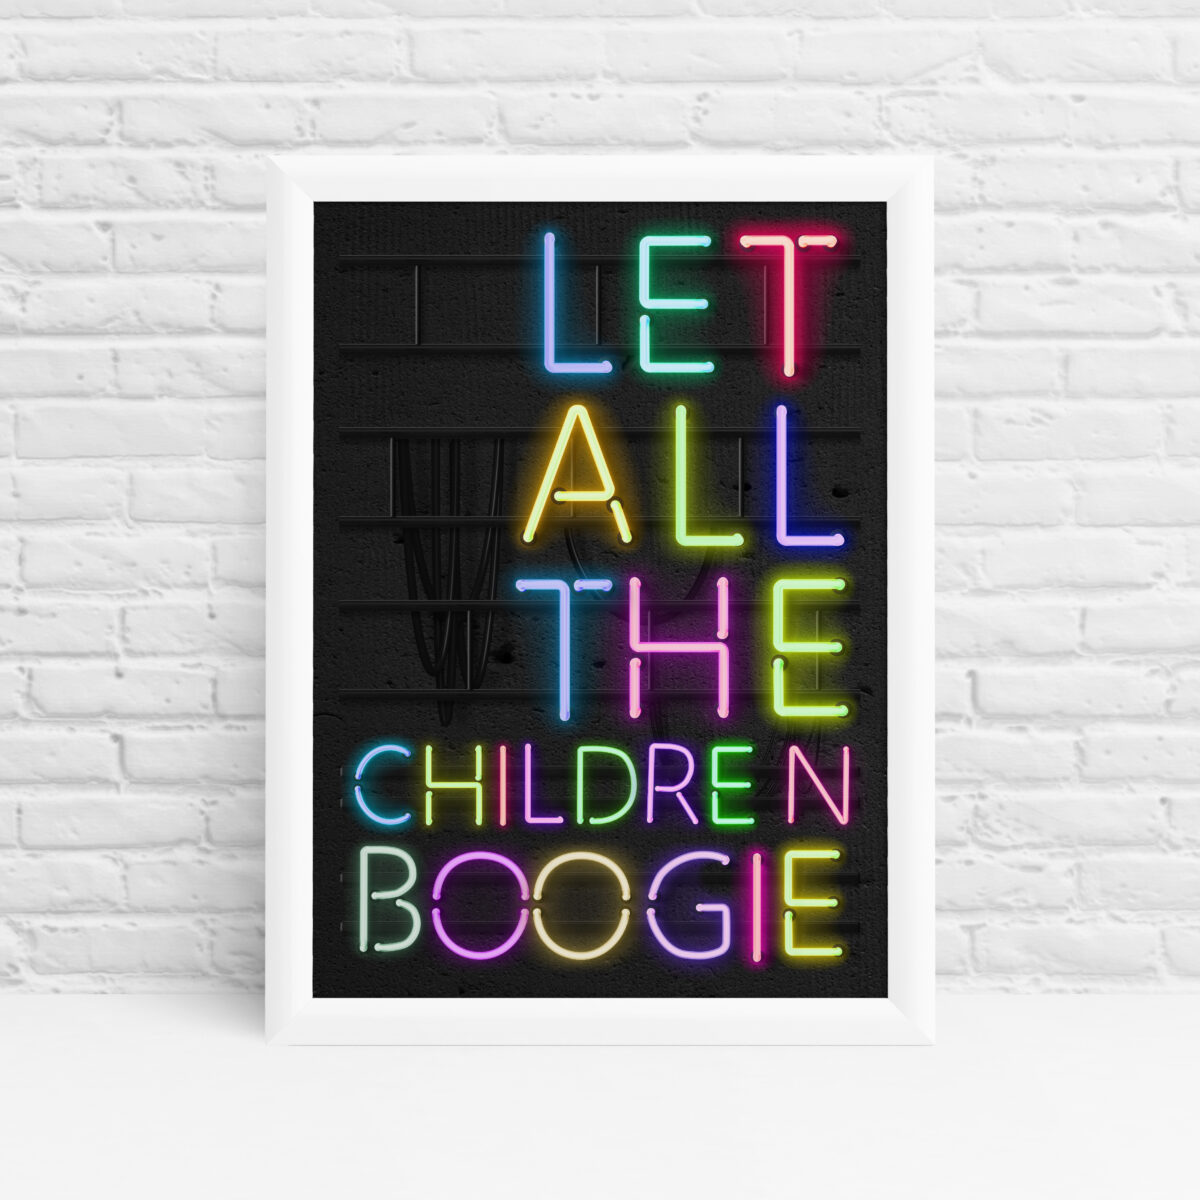 Bowie wall art bedroom print by Ibbleobble®